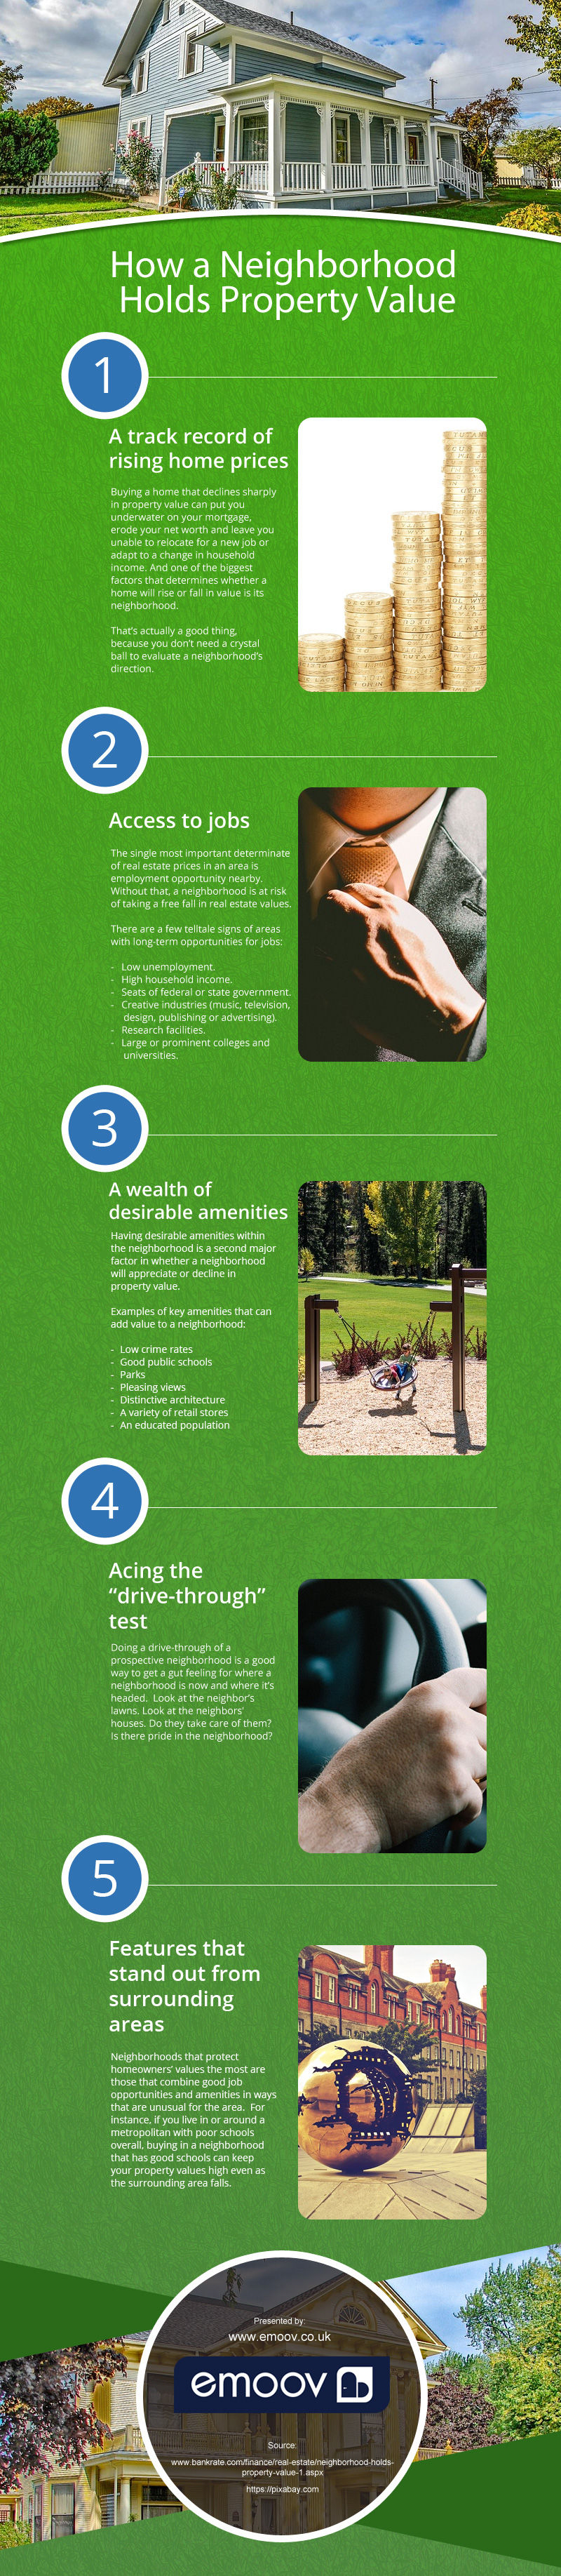 How a Neighborhood Holds Property Value [infographic]